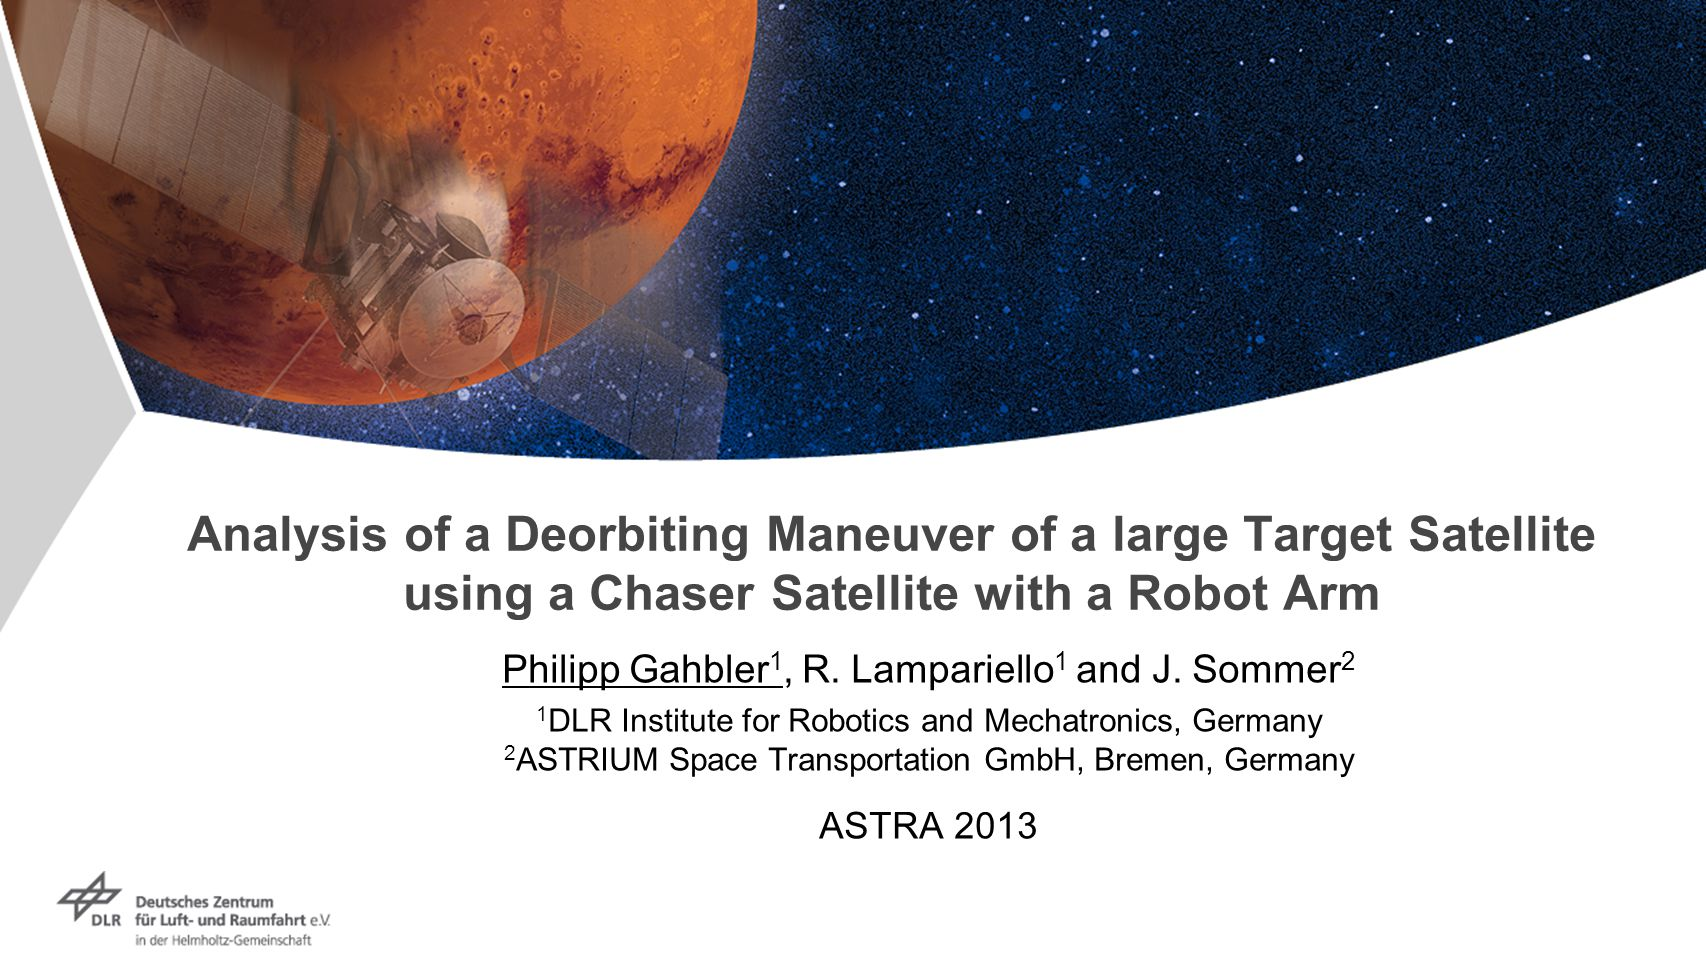 Analysis of a Deorbiting Maneuver of a large Target Satellite using a Chaser Satellite with a Robot Arm Philipp Gahbler 1, R.